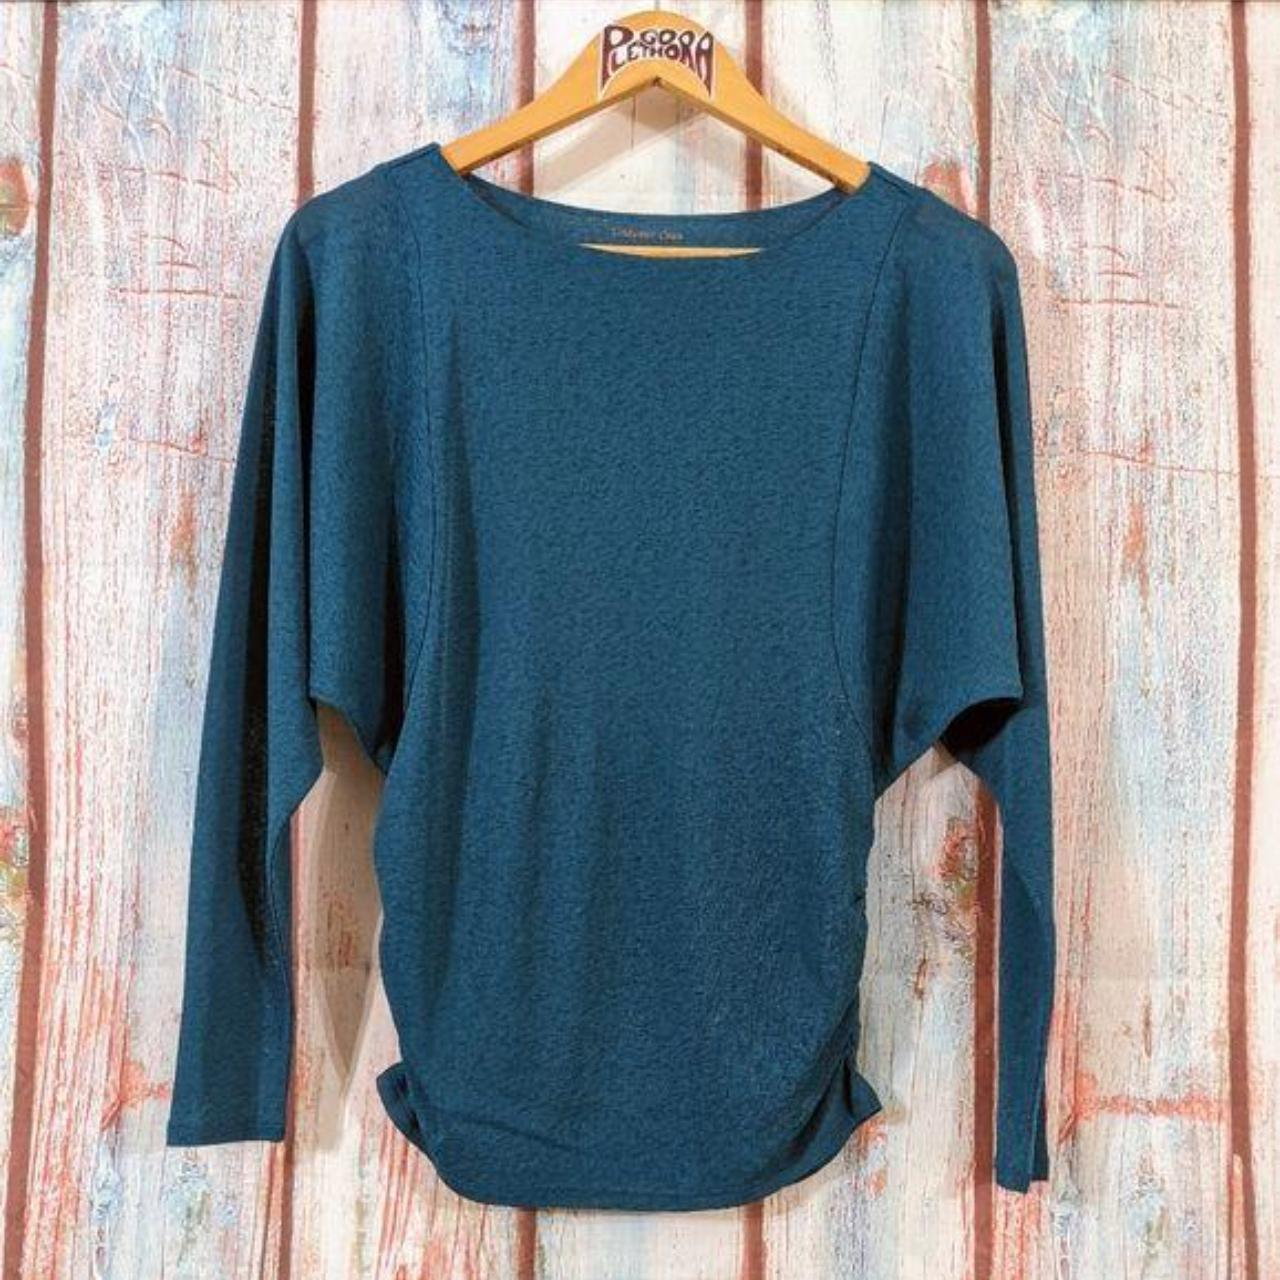 Product Image 1 - 💎 Coldwater Creek Dolman Blouse